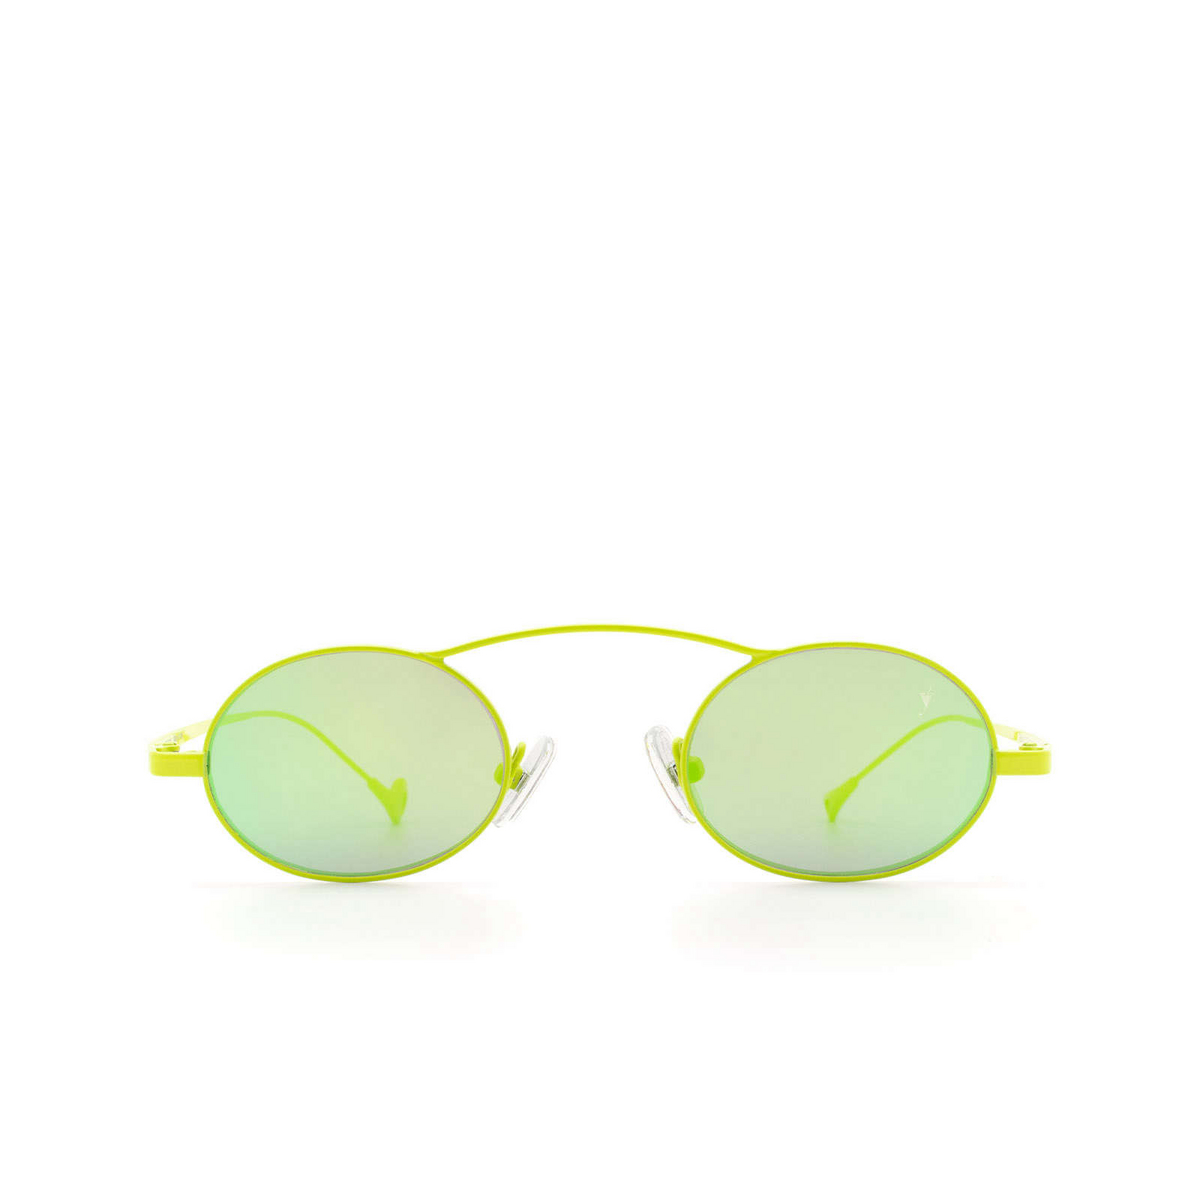 Eyepetizer® Oval Sunglasses: Birkin color Lime Green C.12-36 - front view.